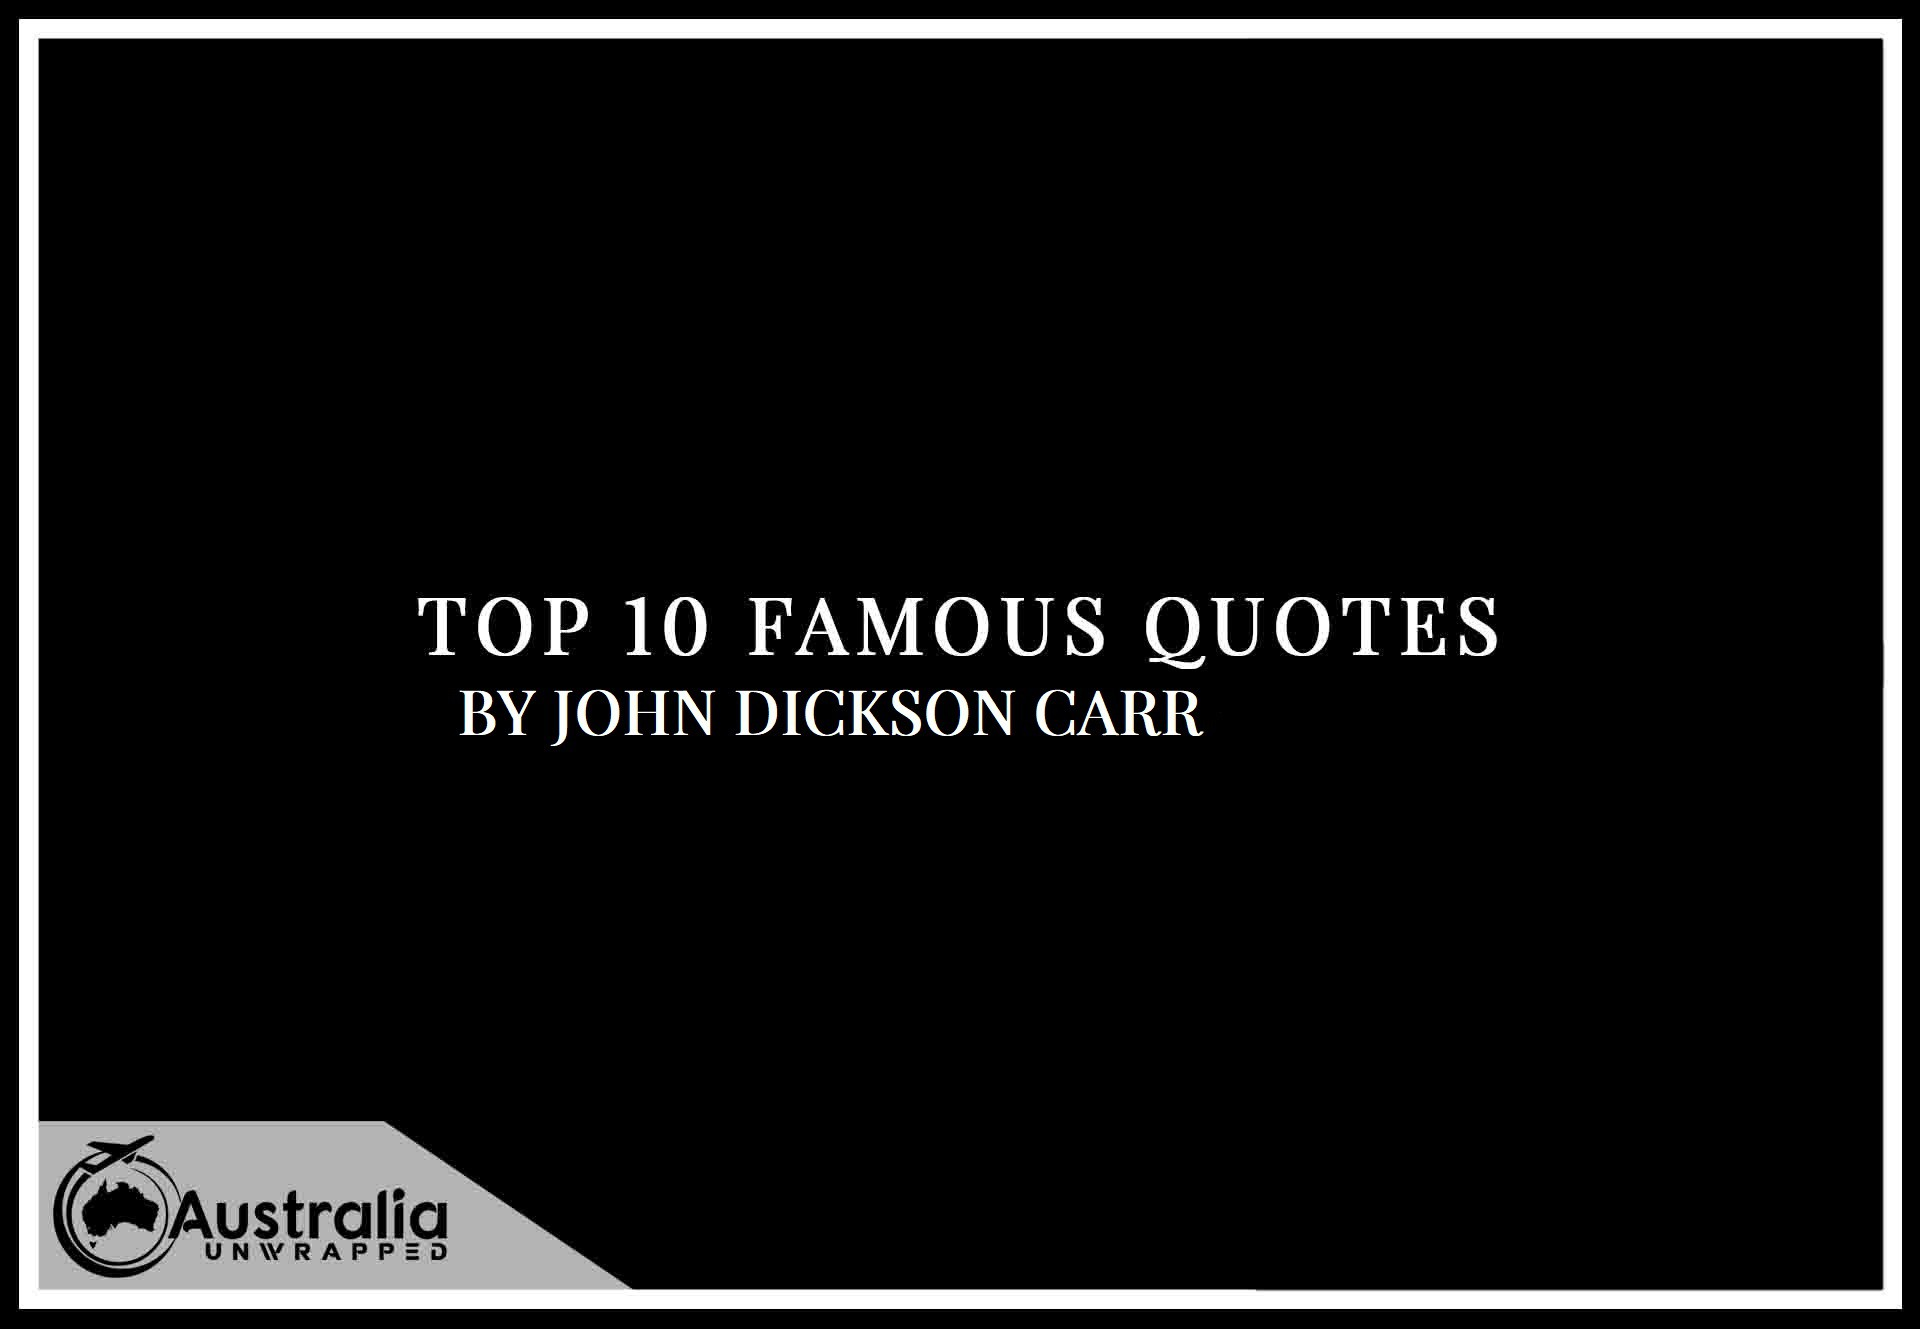 Top 10 Famous Quotes by Author John Dickson Carr